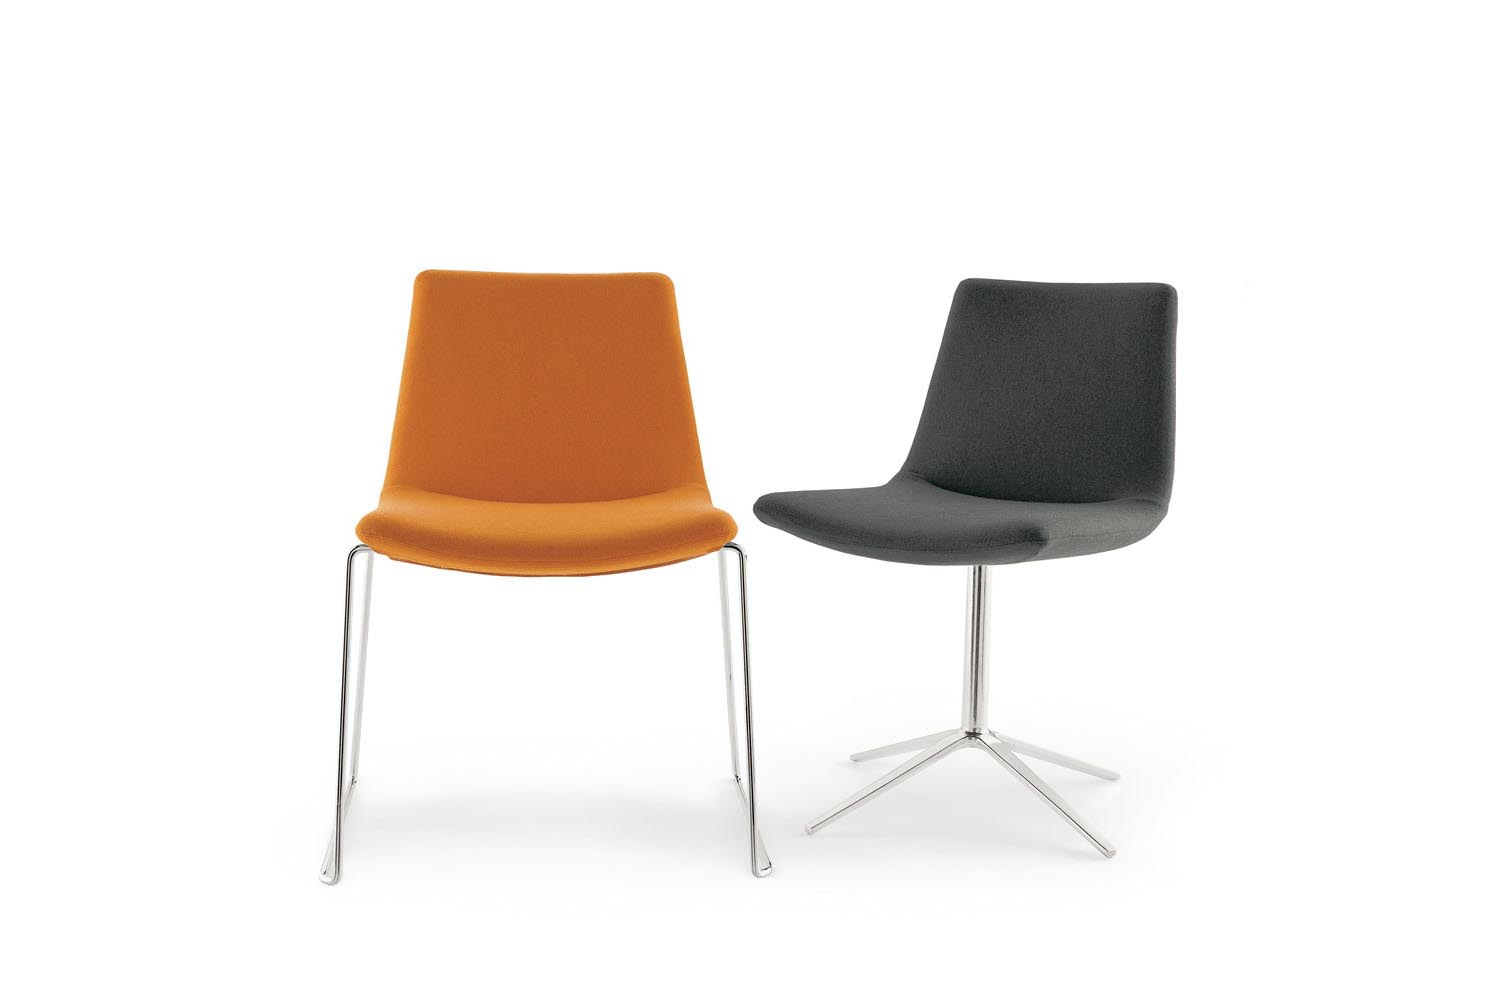 stool chair big w top office chairs under 200 cosmos by jeffrey bernett for b andb italia project